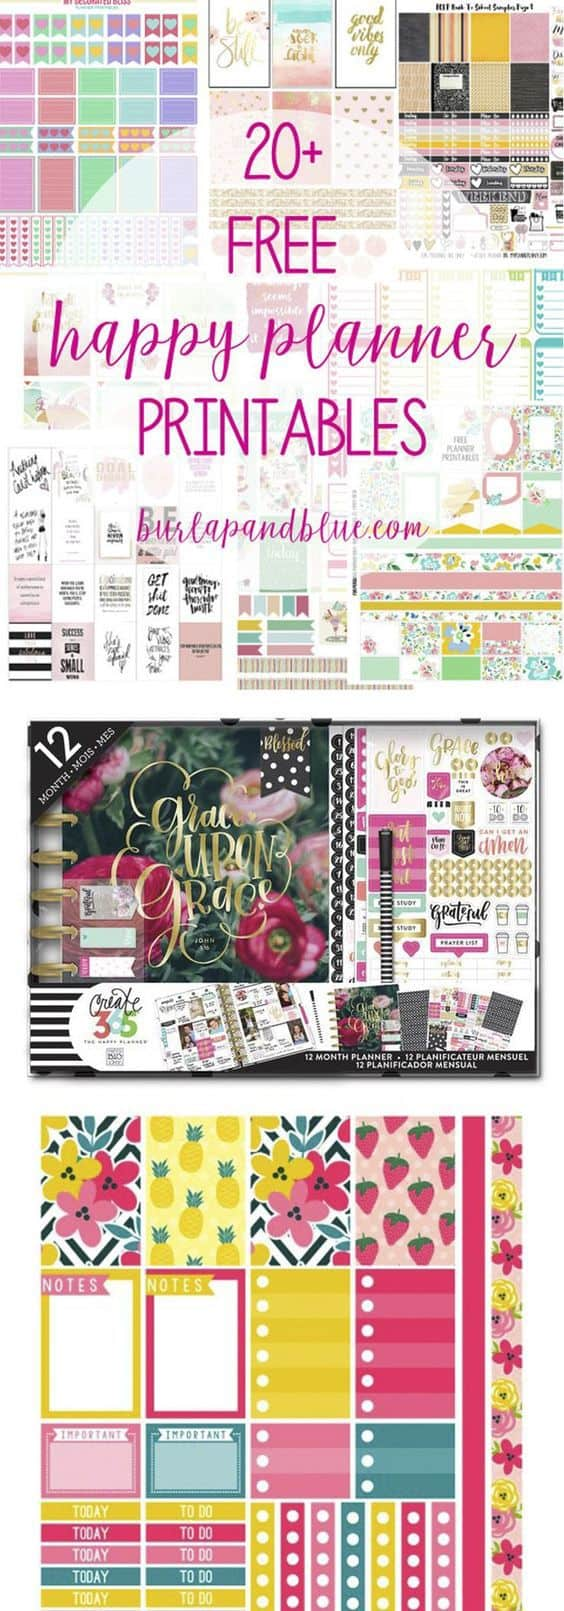 picture relating to Free Happy Planner Printables named Weekly Planner Printables No cost for Your Satisfied Planner